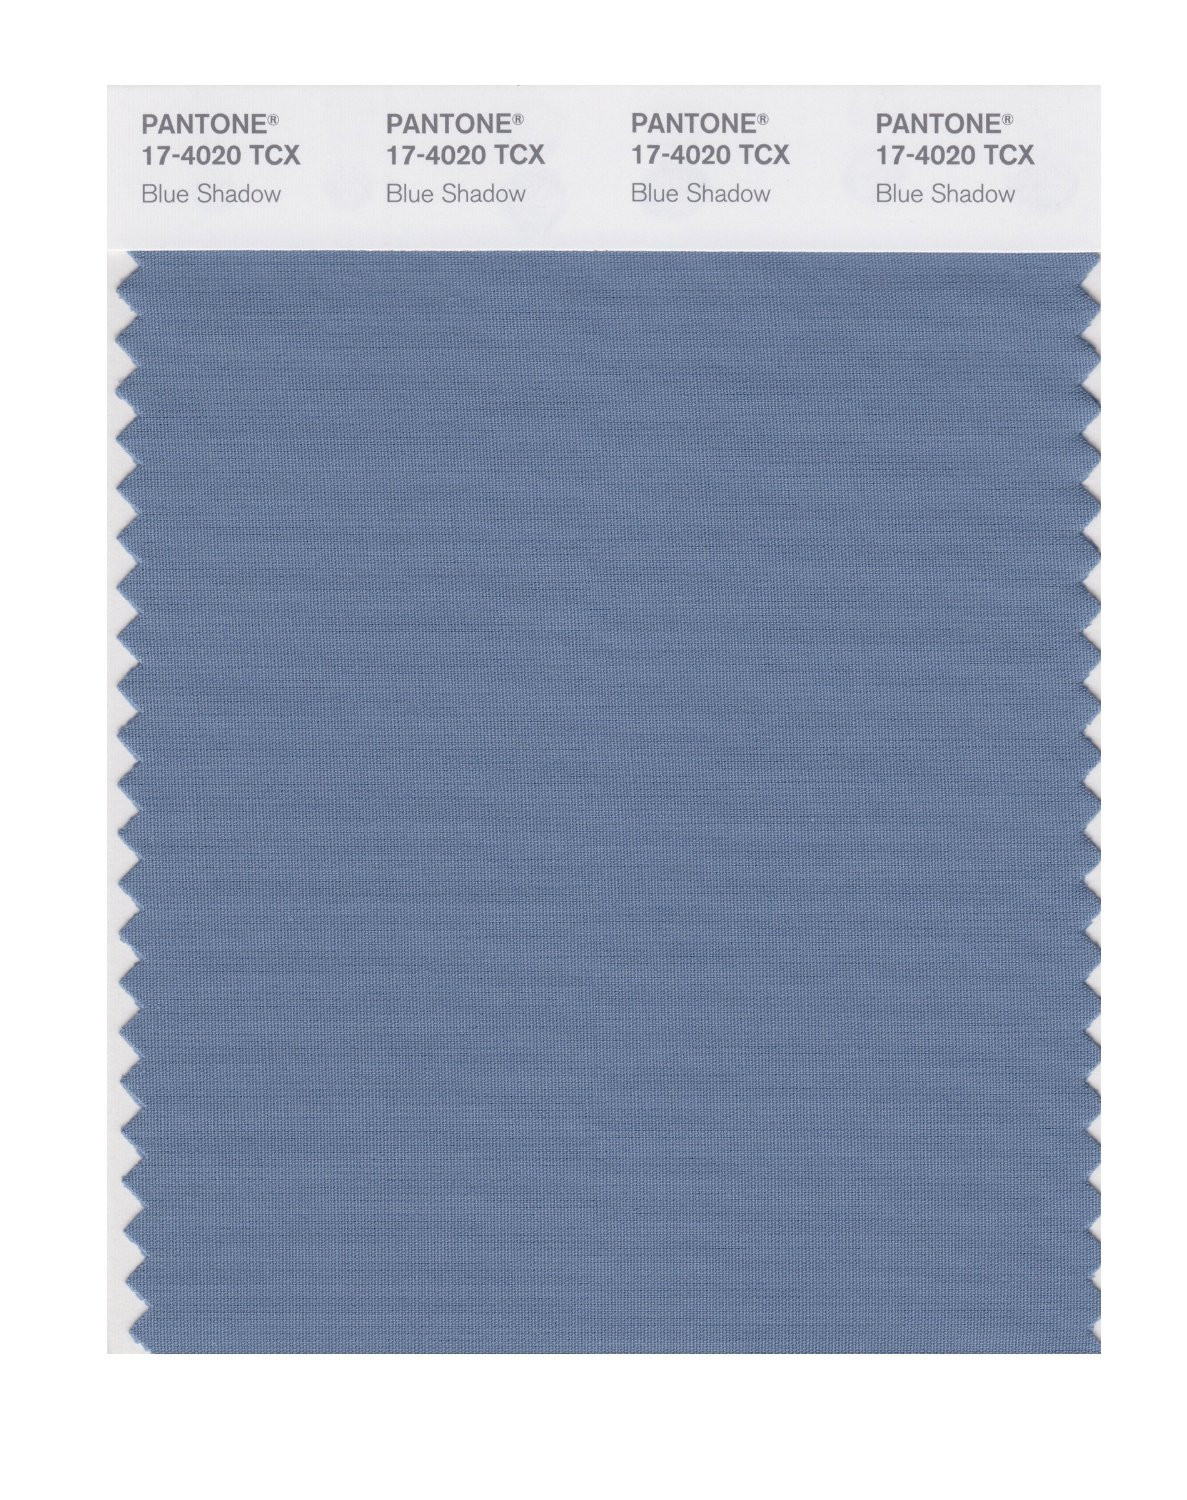 Pantone Smart Swatch 17-4020 Blue Shadow